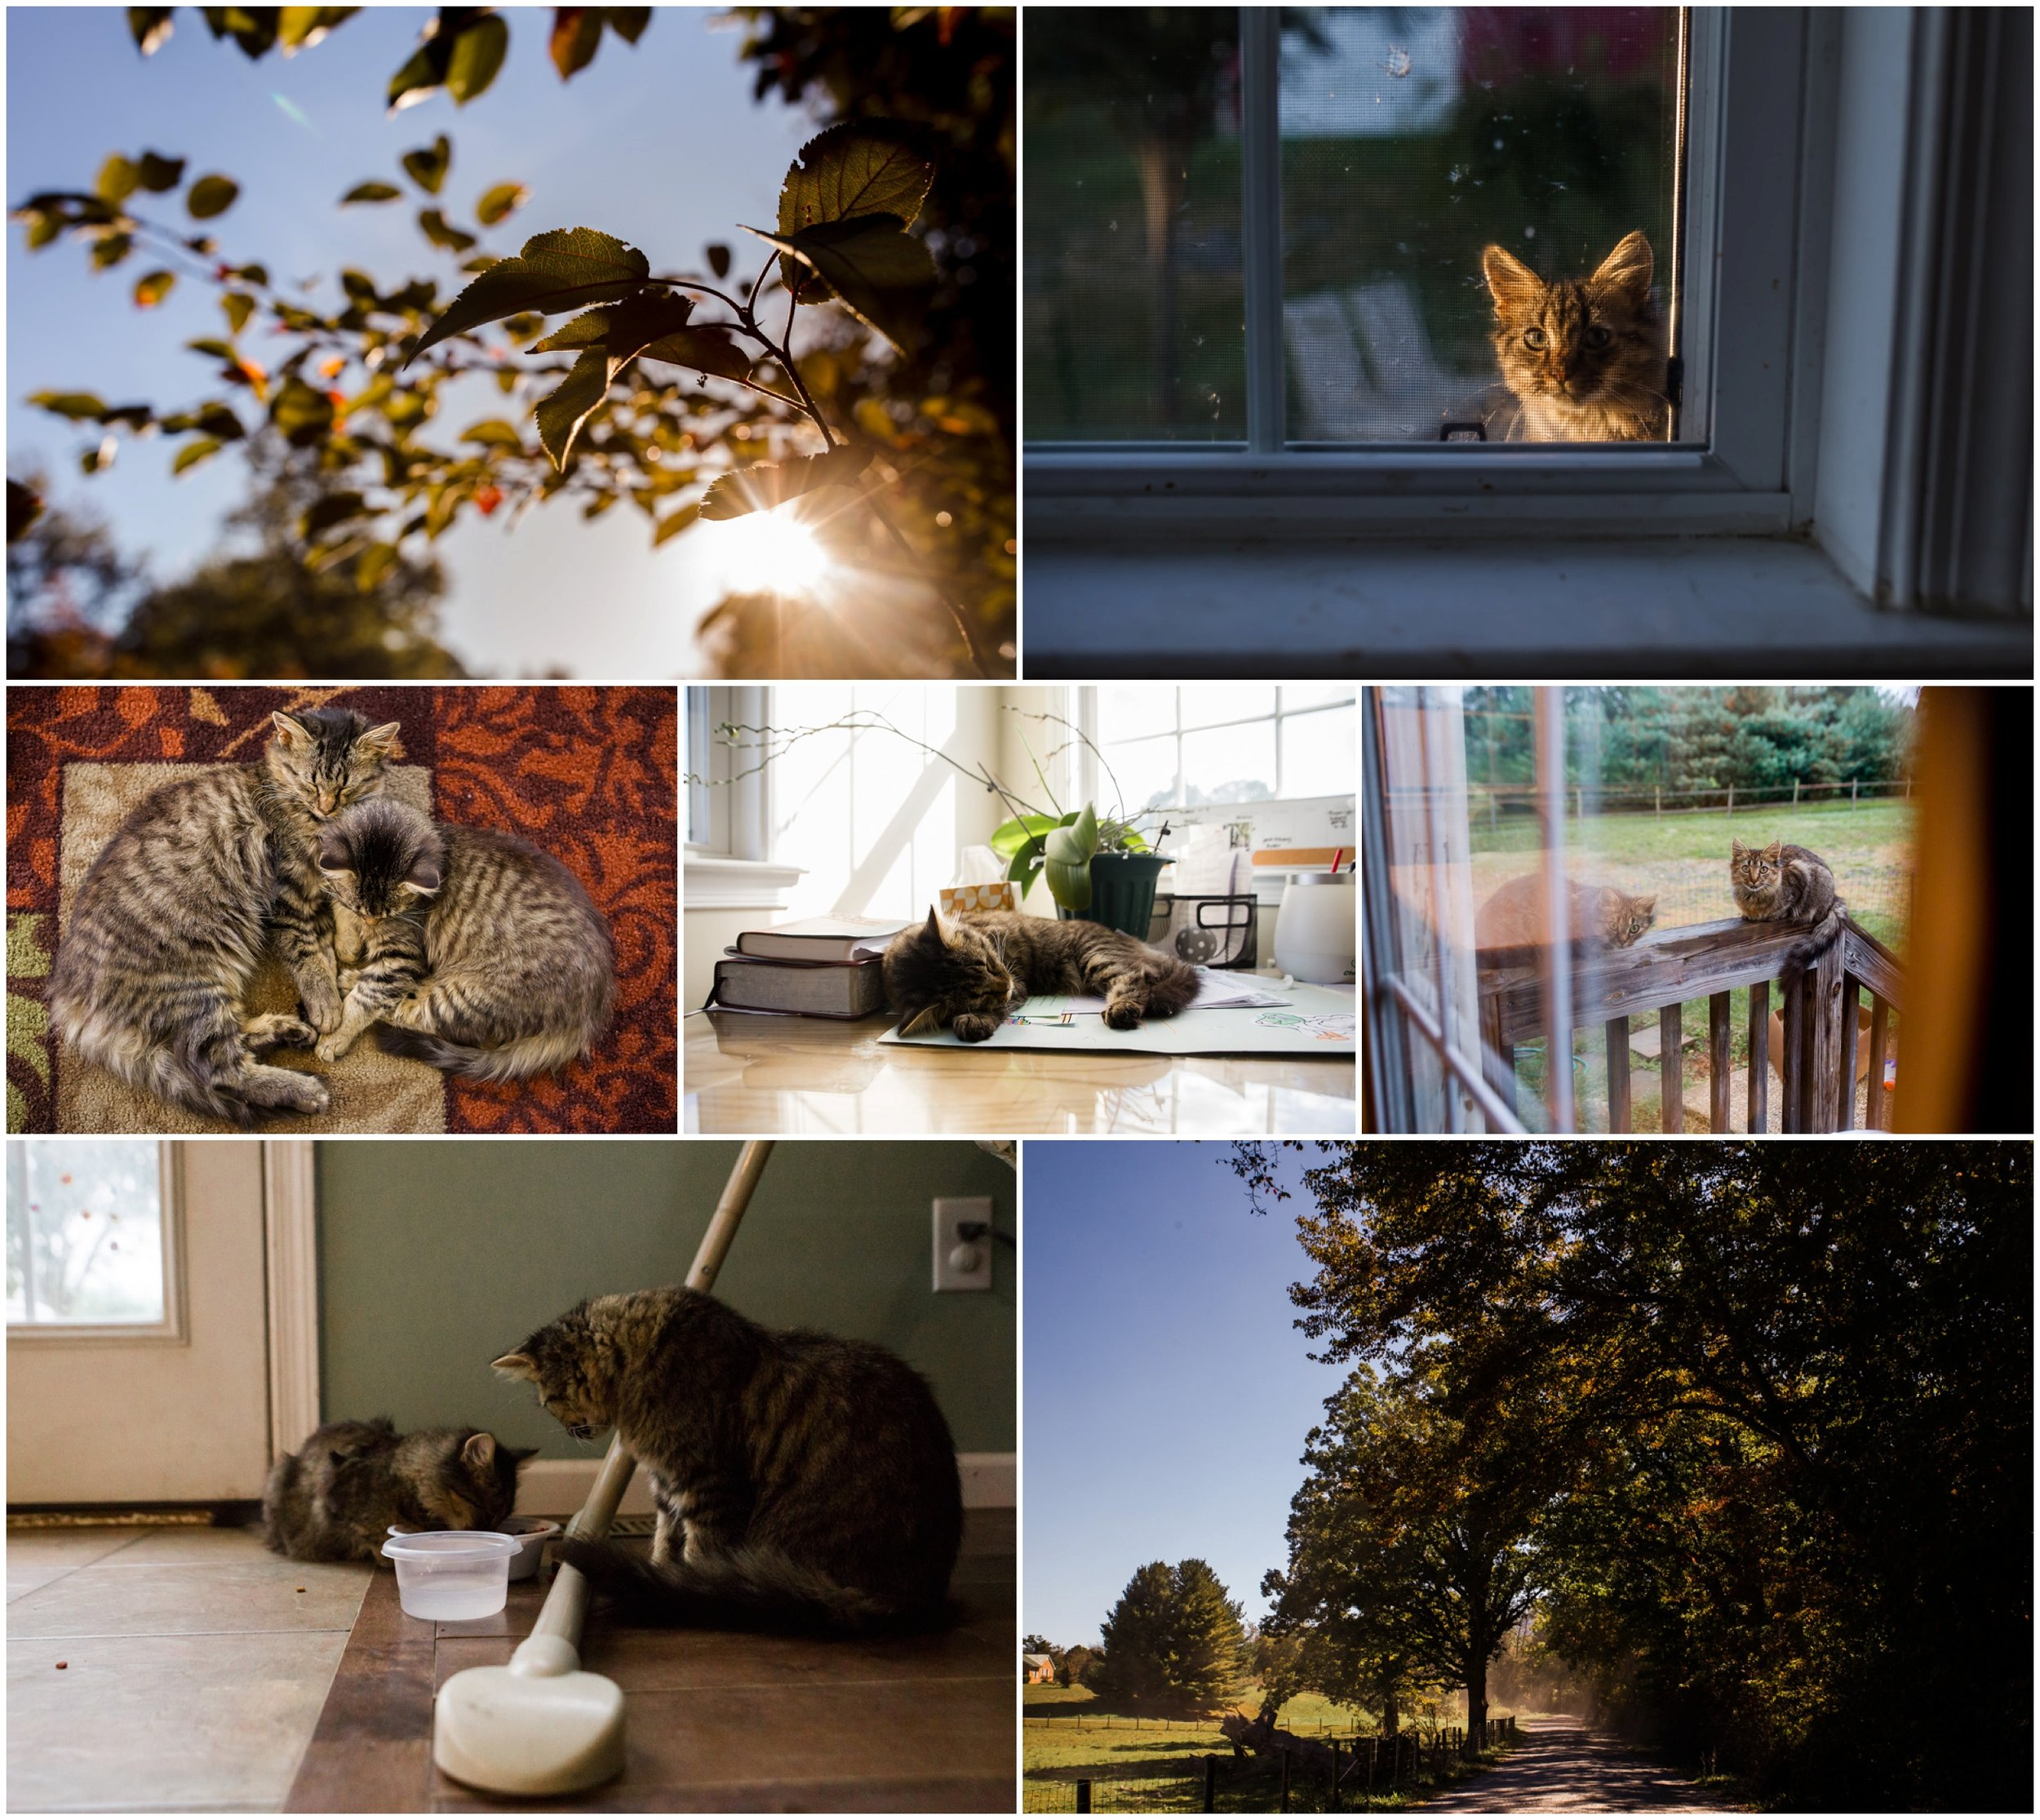 hollipoolphotography fall, kitty, fall leaves, cat pet